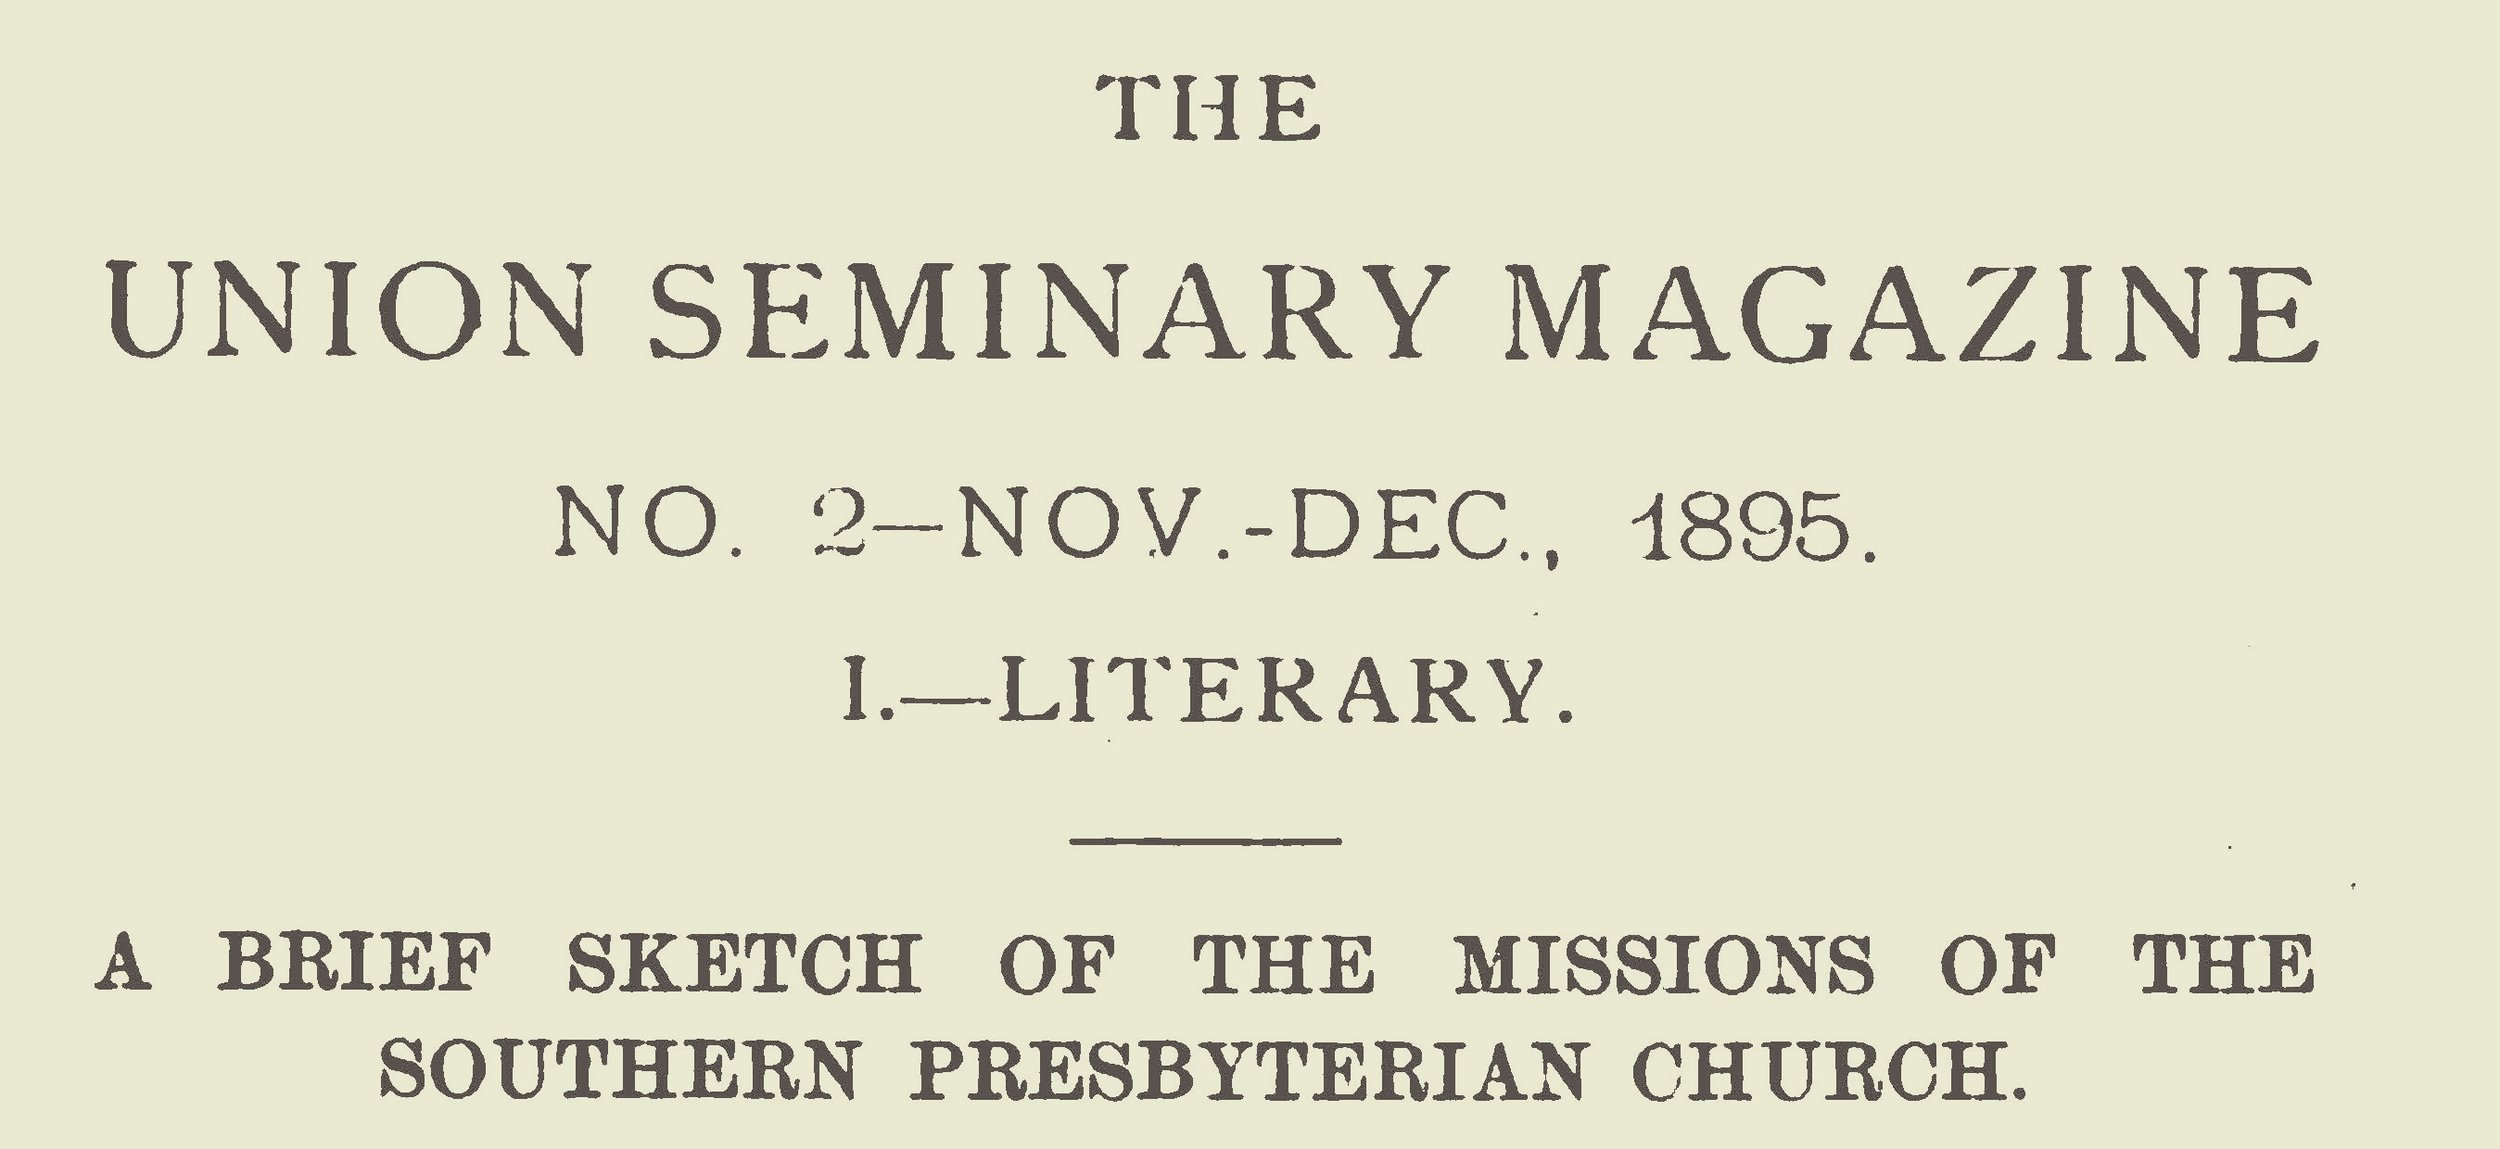 Johnson, Thomas Cary, A Brief Sketch of the Missions of the Southern Presbyterian Church Title Page.jpg